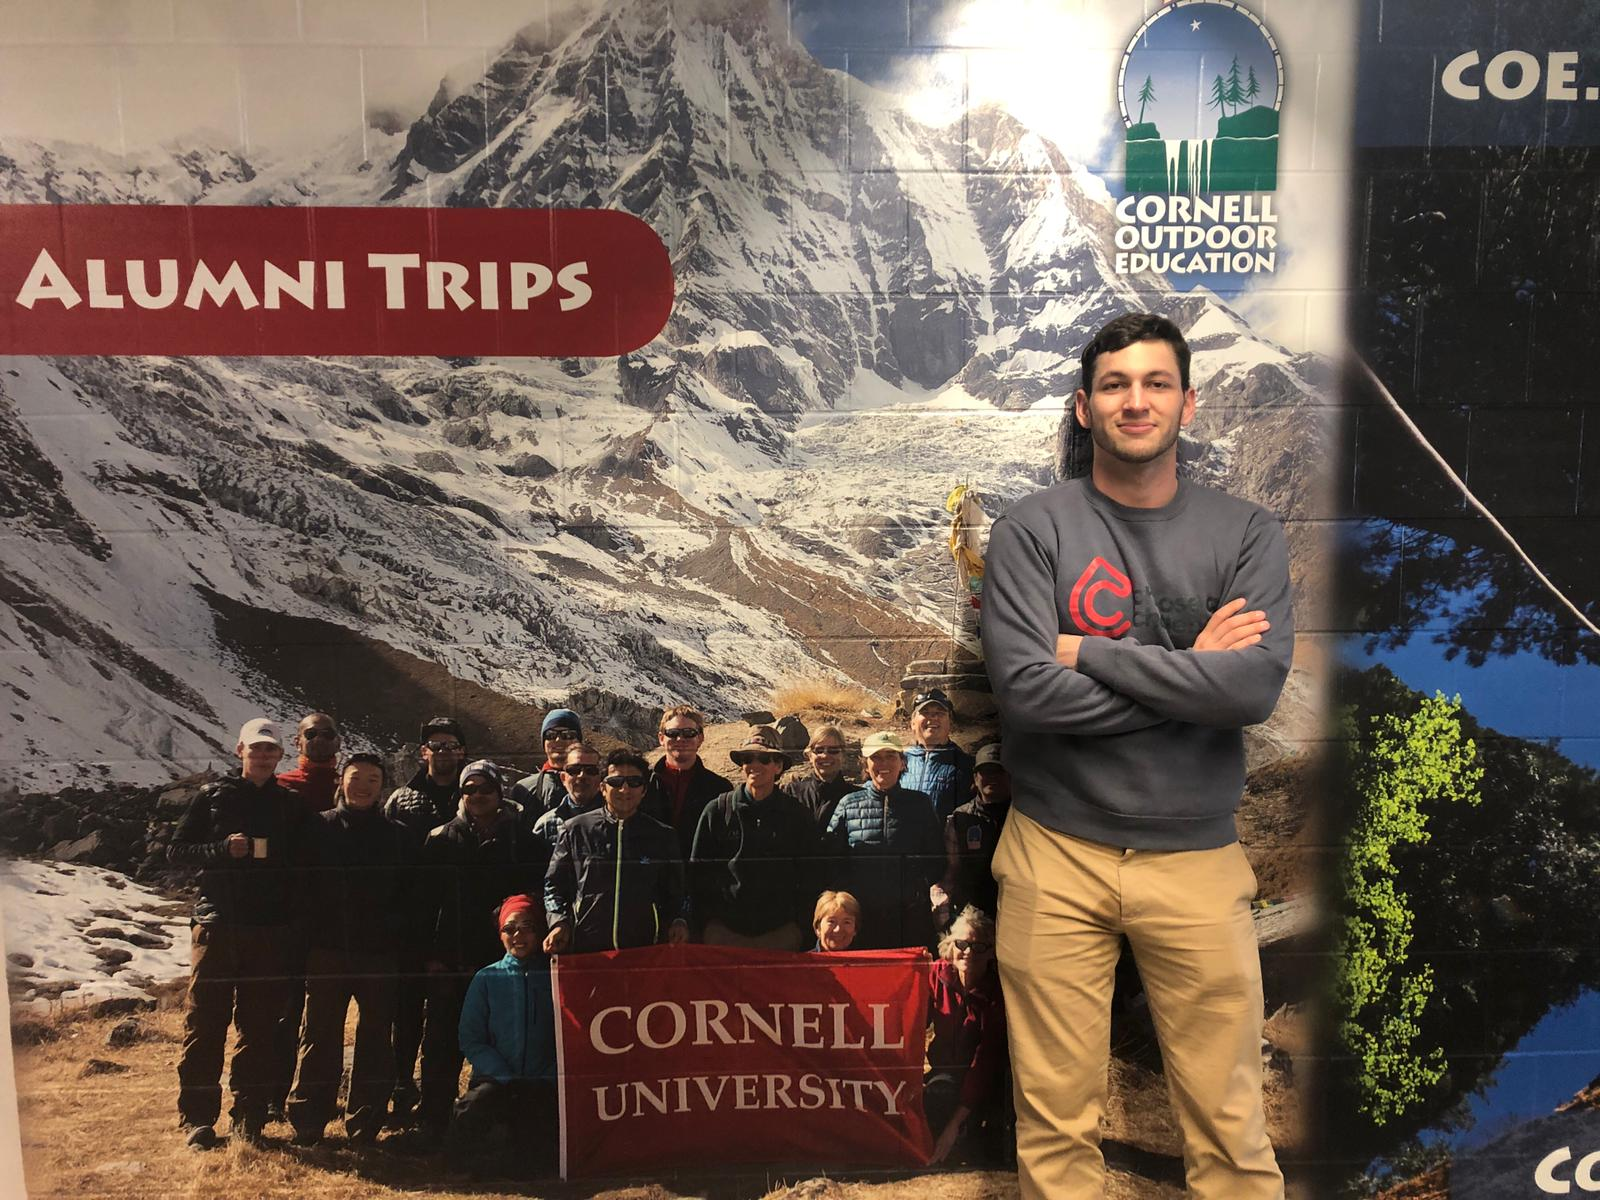 Outside Cornell Outdoor Education